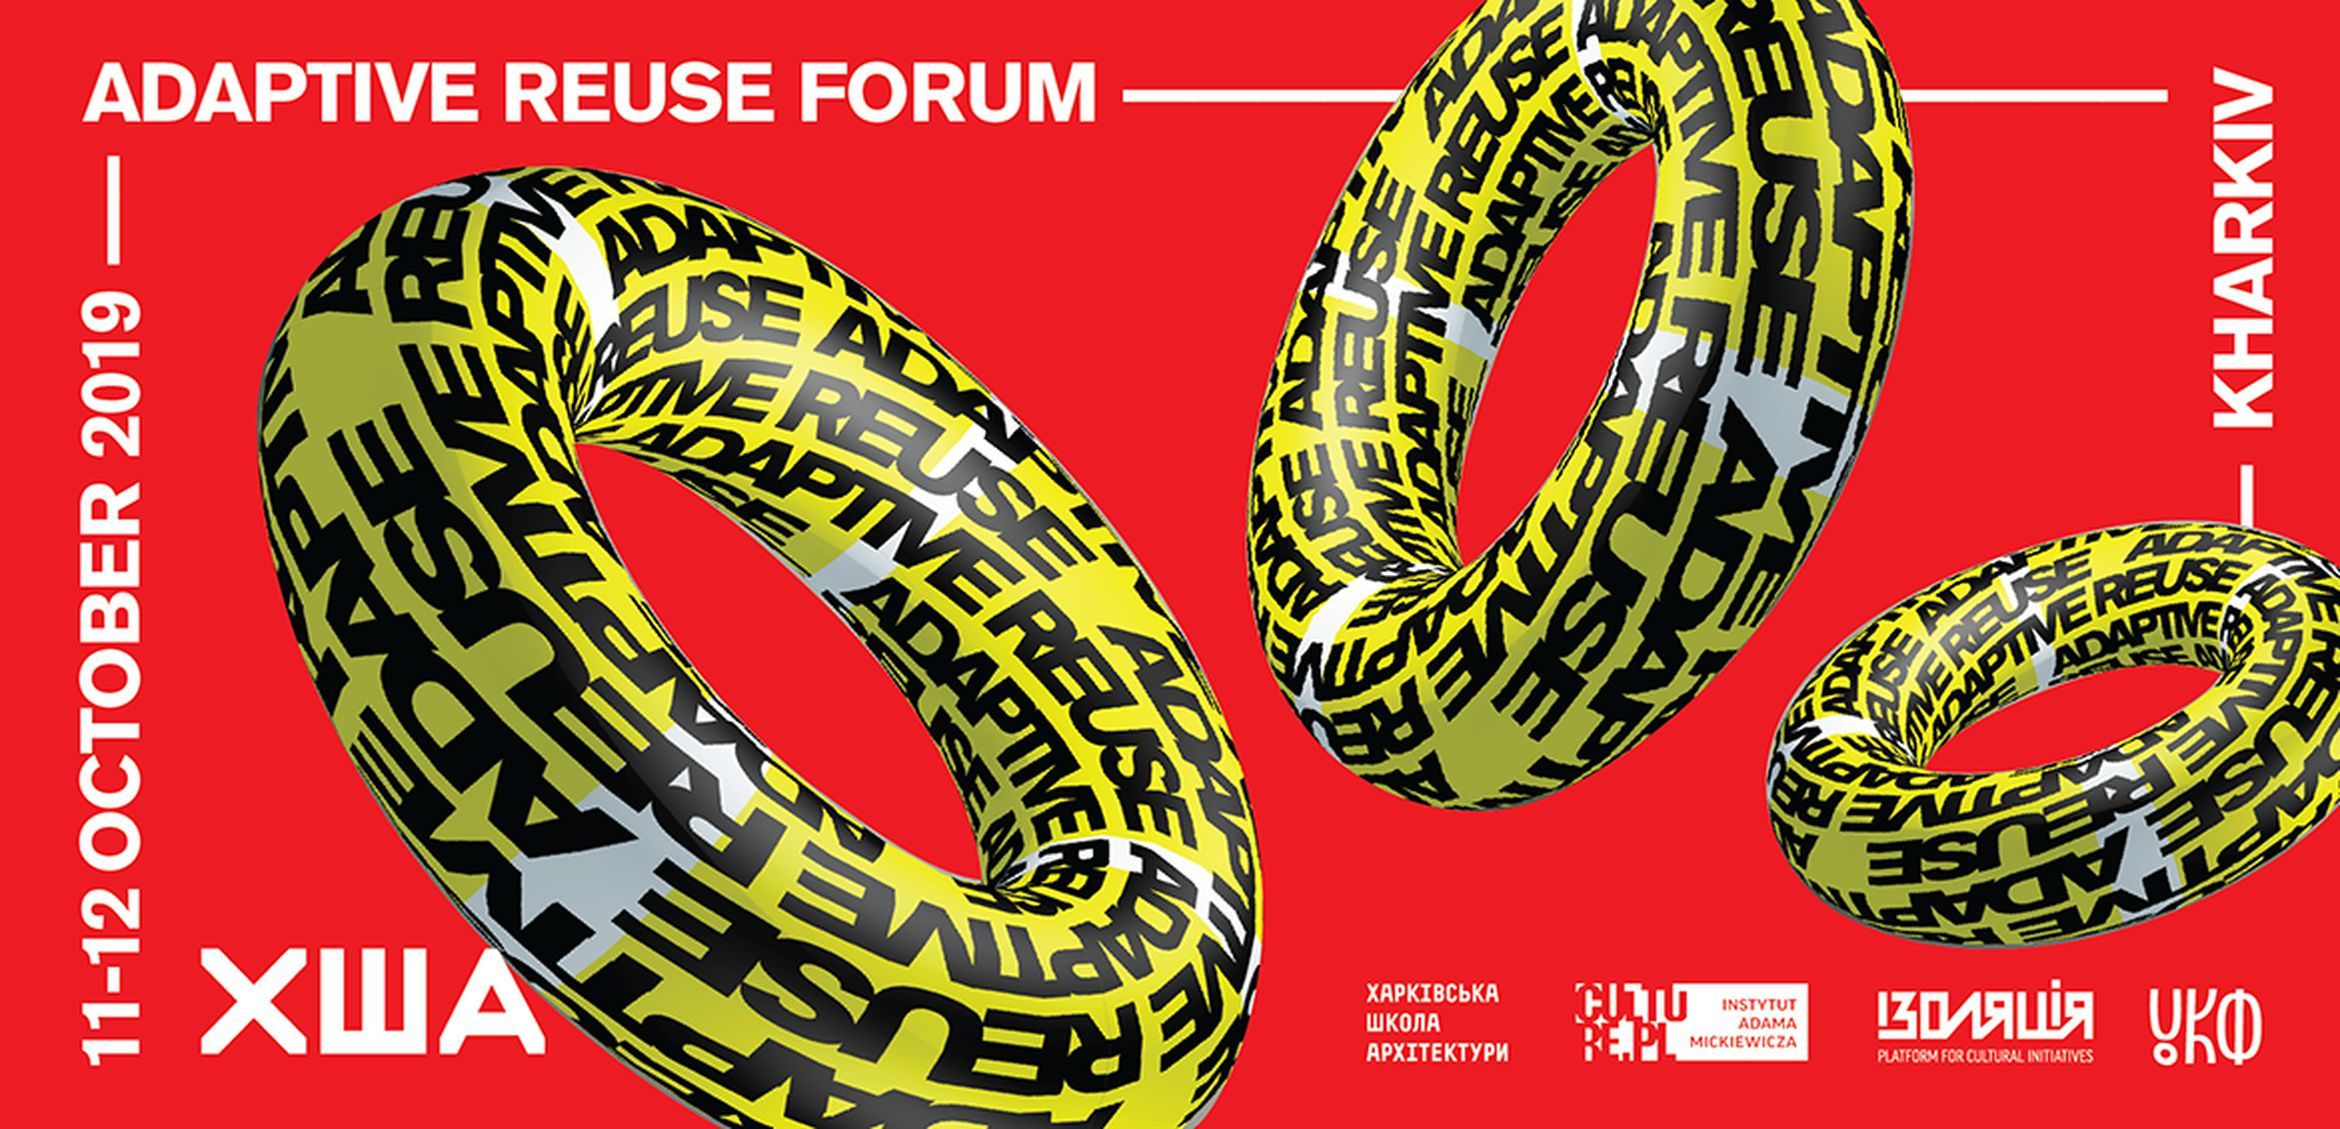 Adaptive Reuse Forum